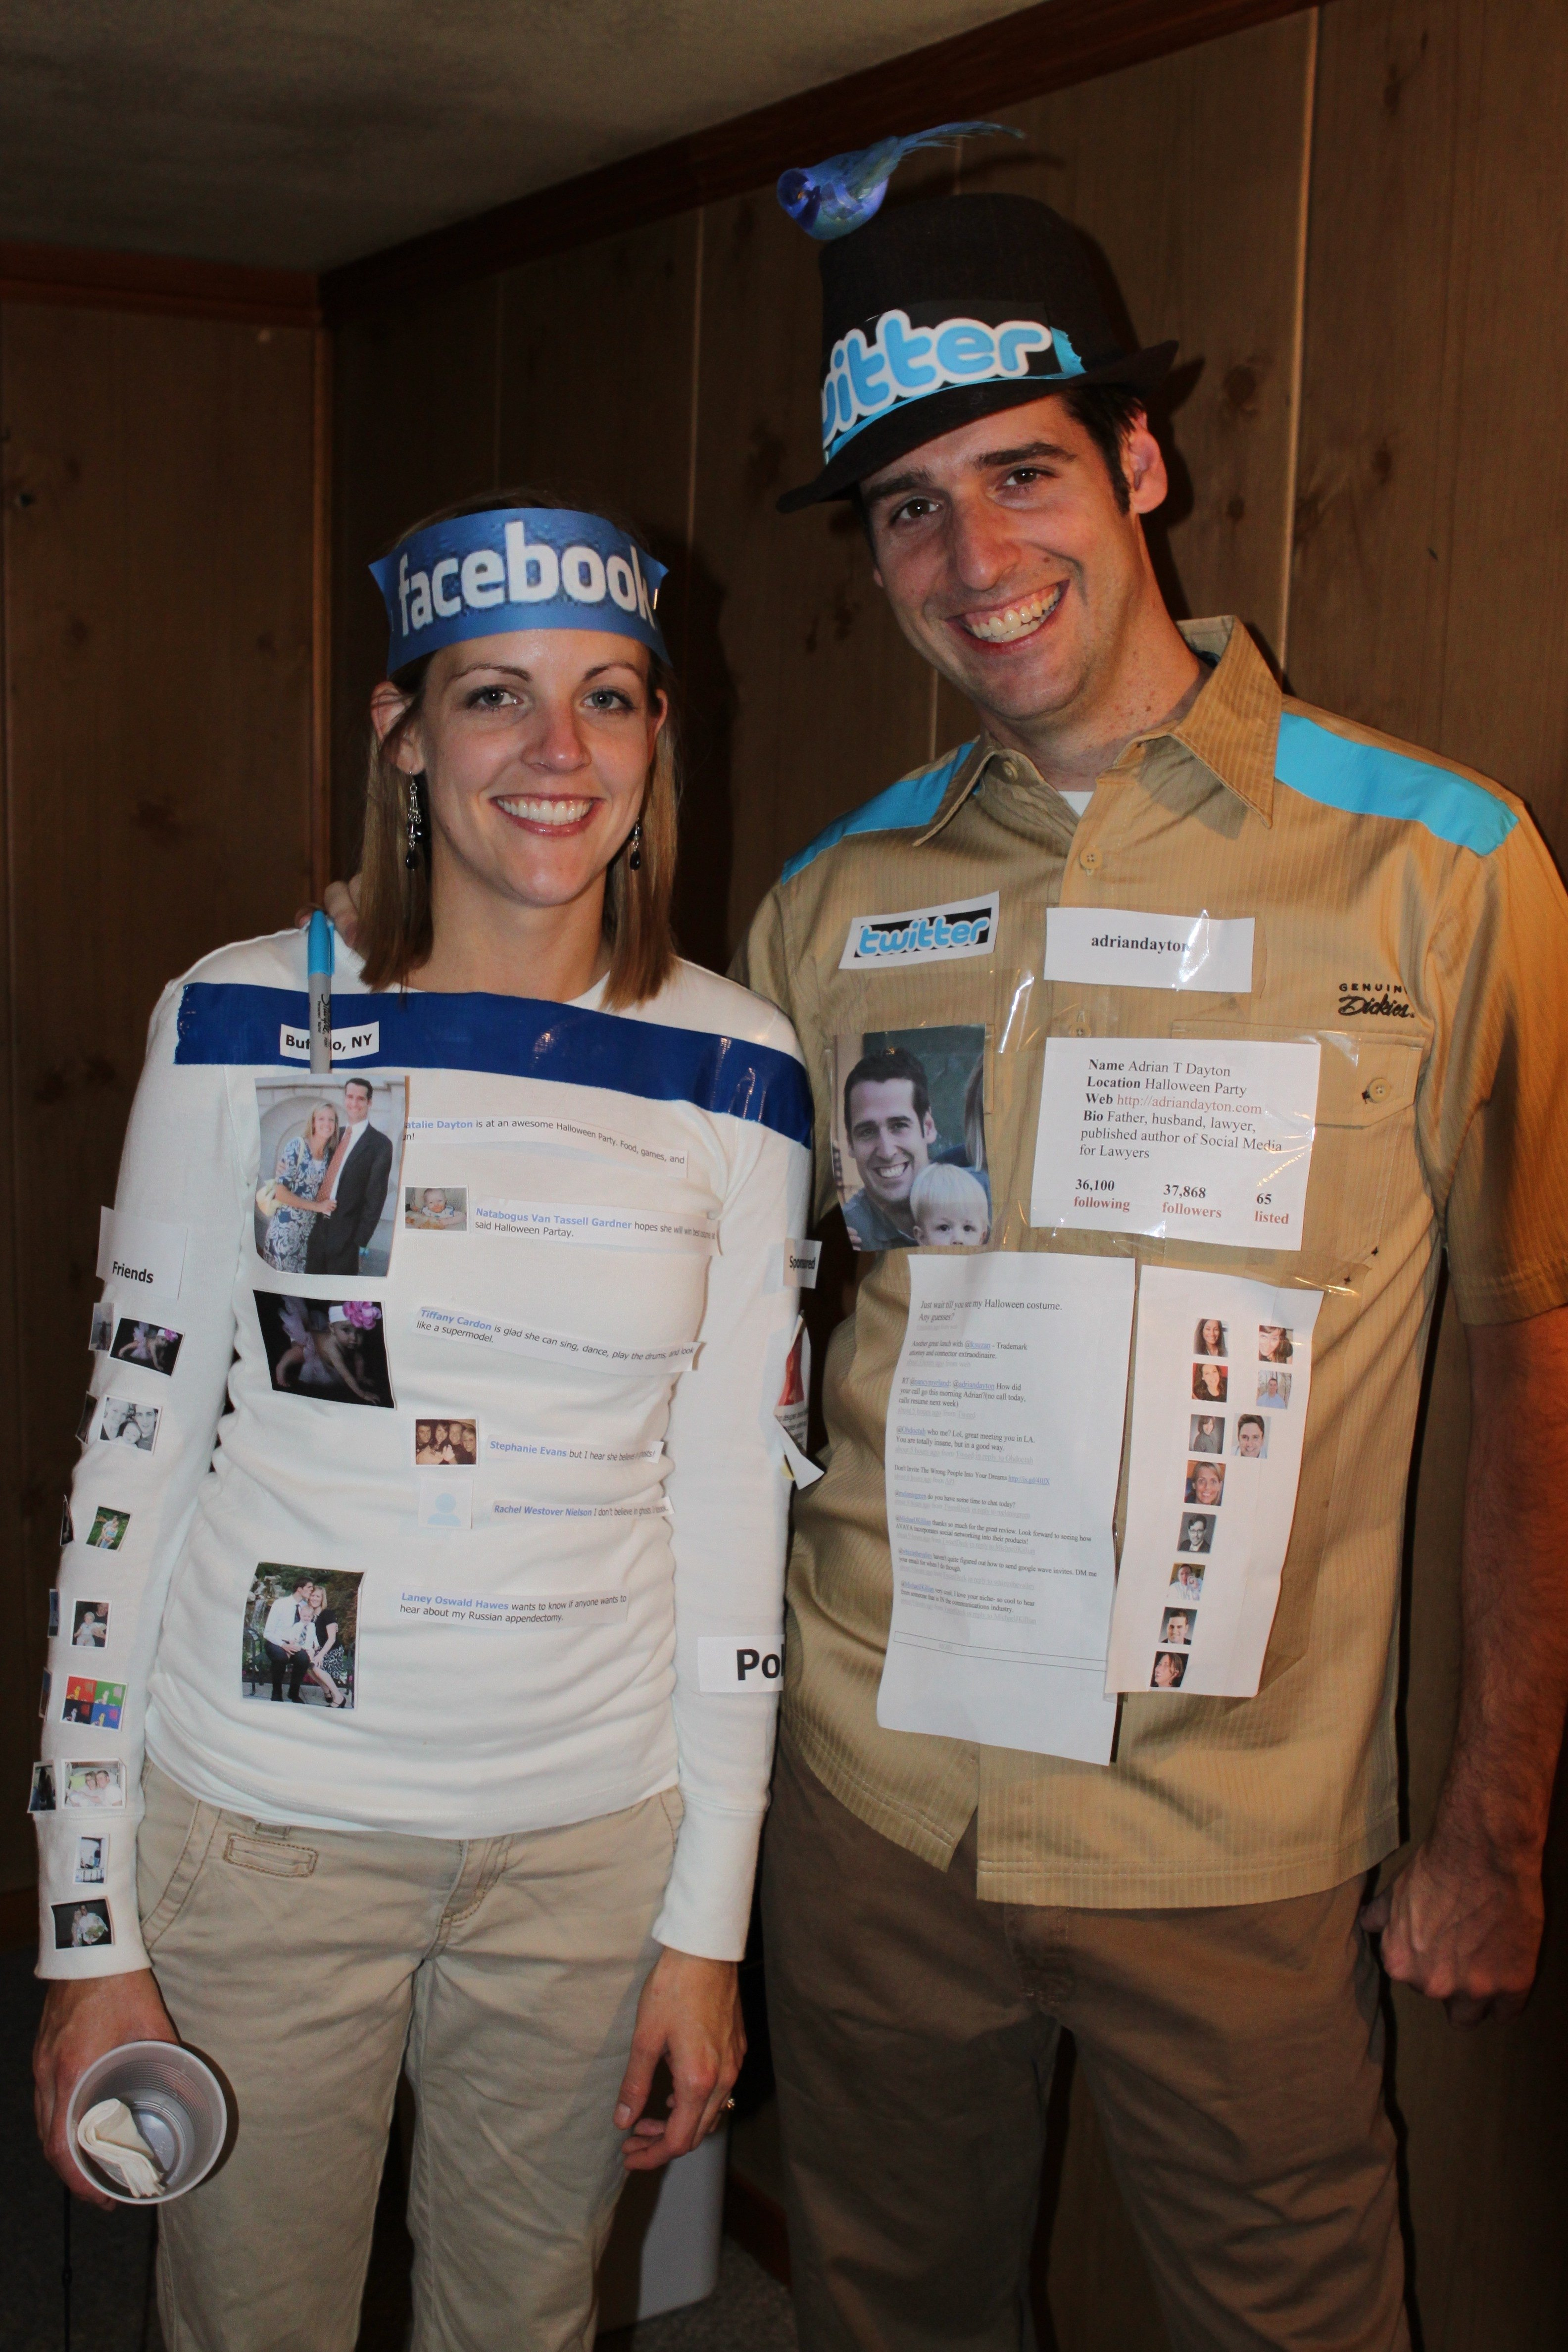 10 Lovable Funny Ideas For Halloween Costumes the social media couple costume 8 2020